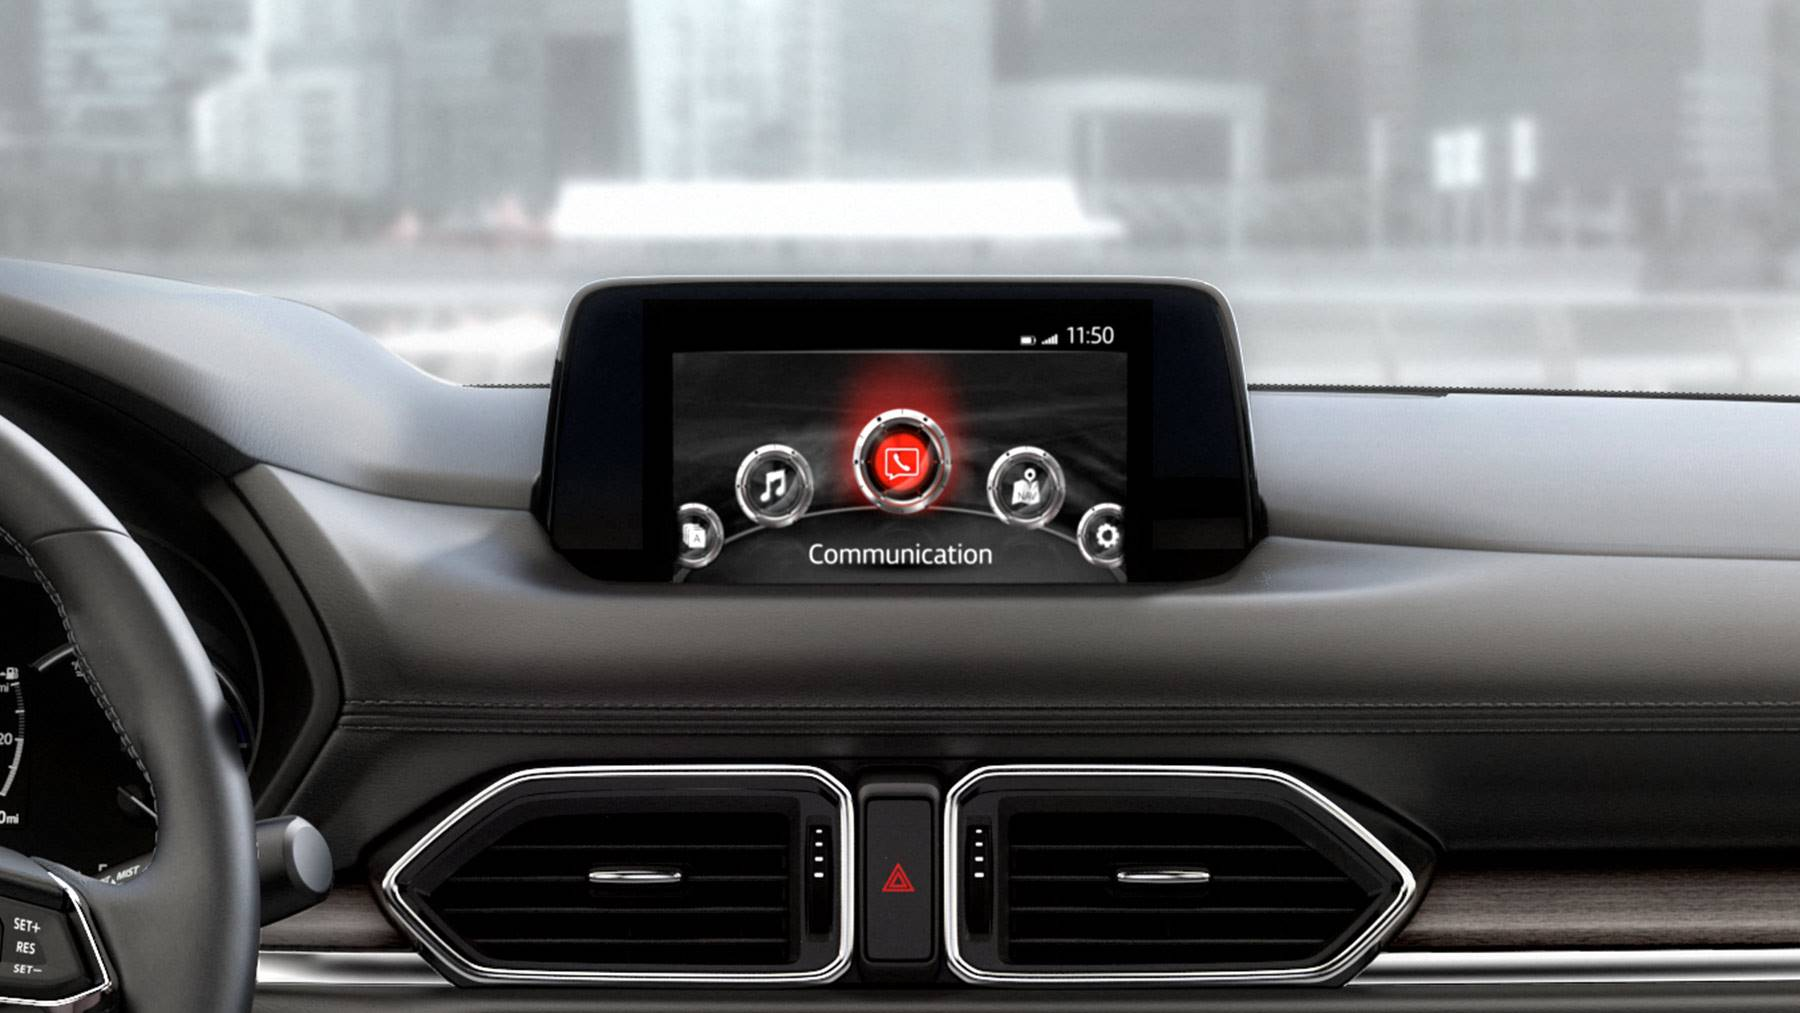 All Your Media at Your Fingertips in the Mazda CX-5!